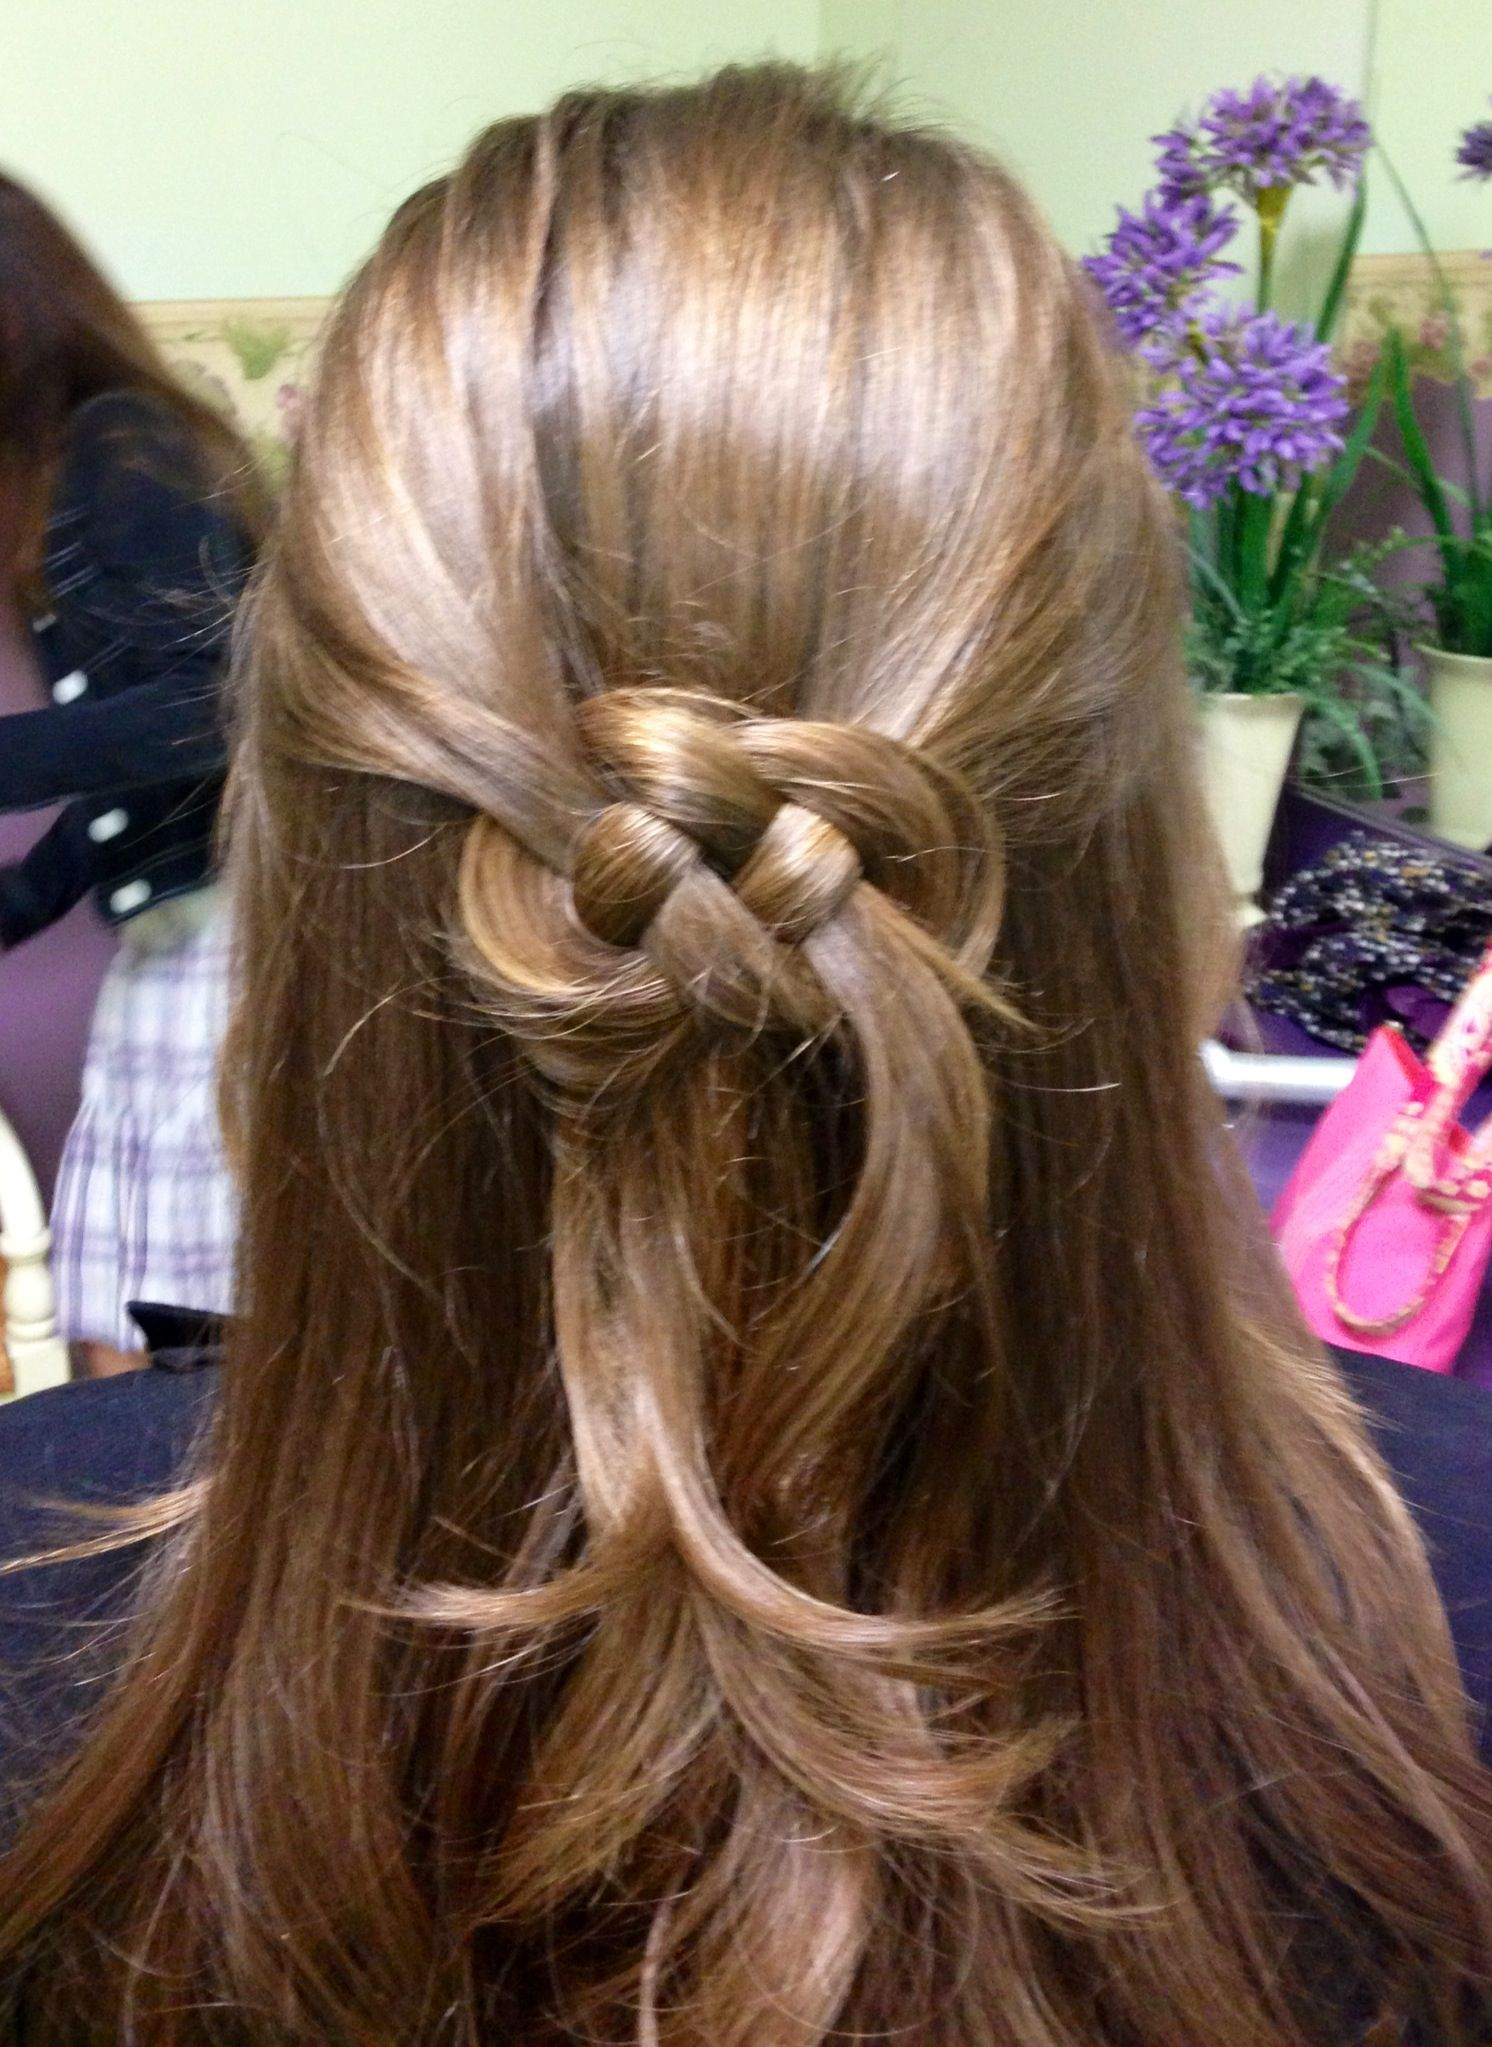 infinity hair style celtic infinity knot interesting hair 5360 | bd41a24632da7bfdbba96c7abc25a8de